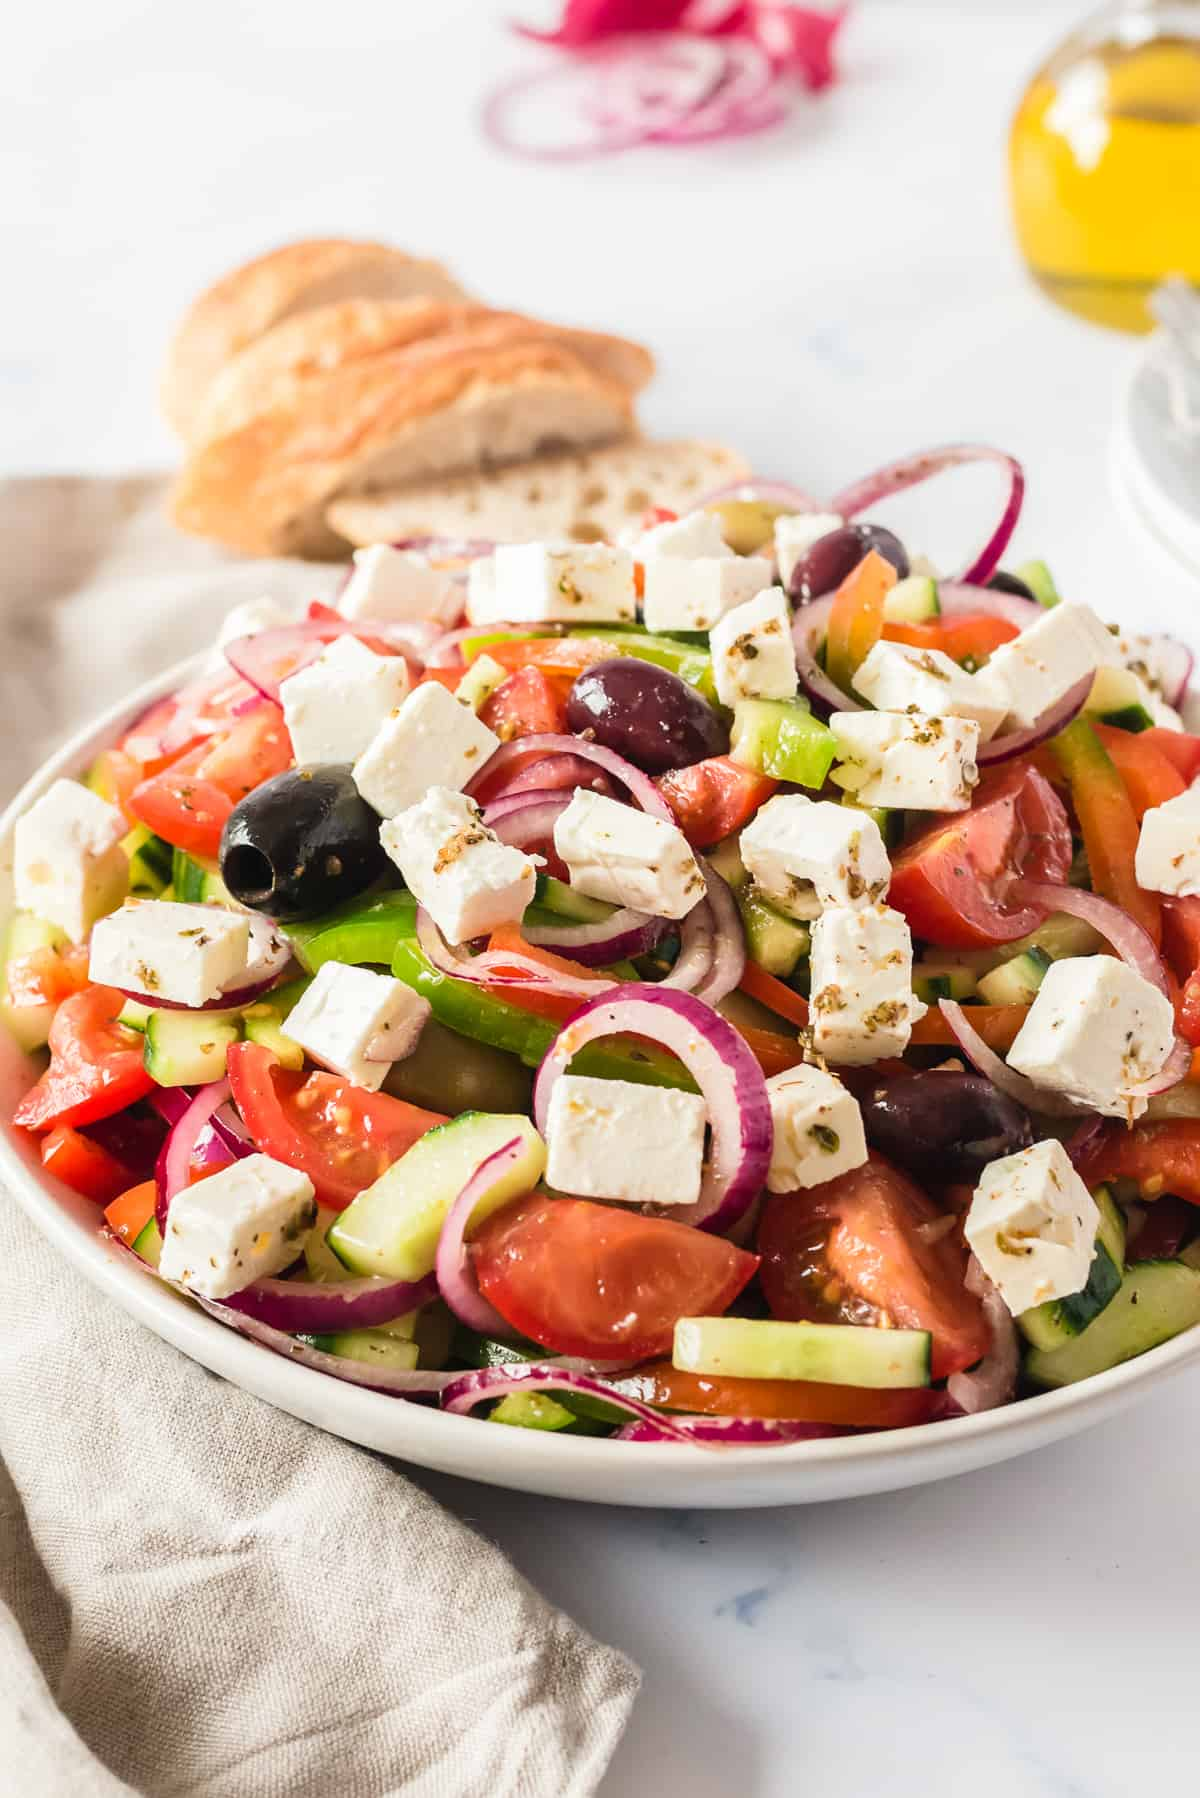 side shot of salad in white bowl with bread